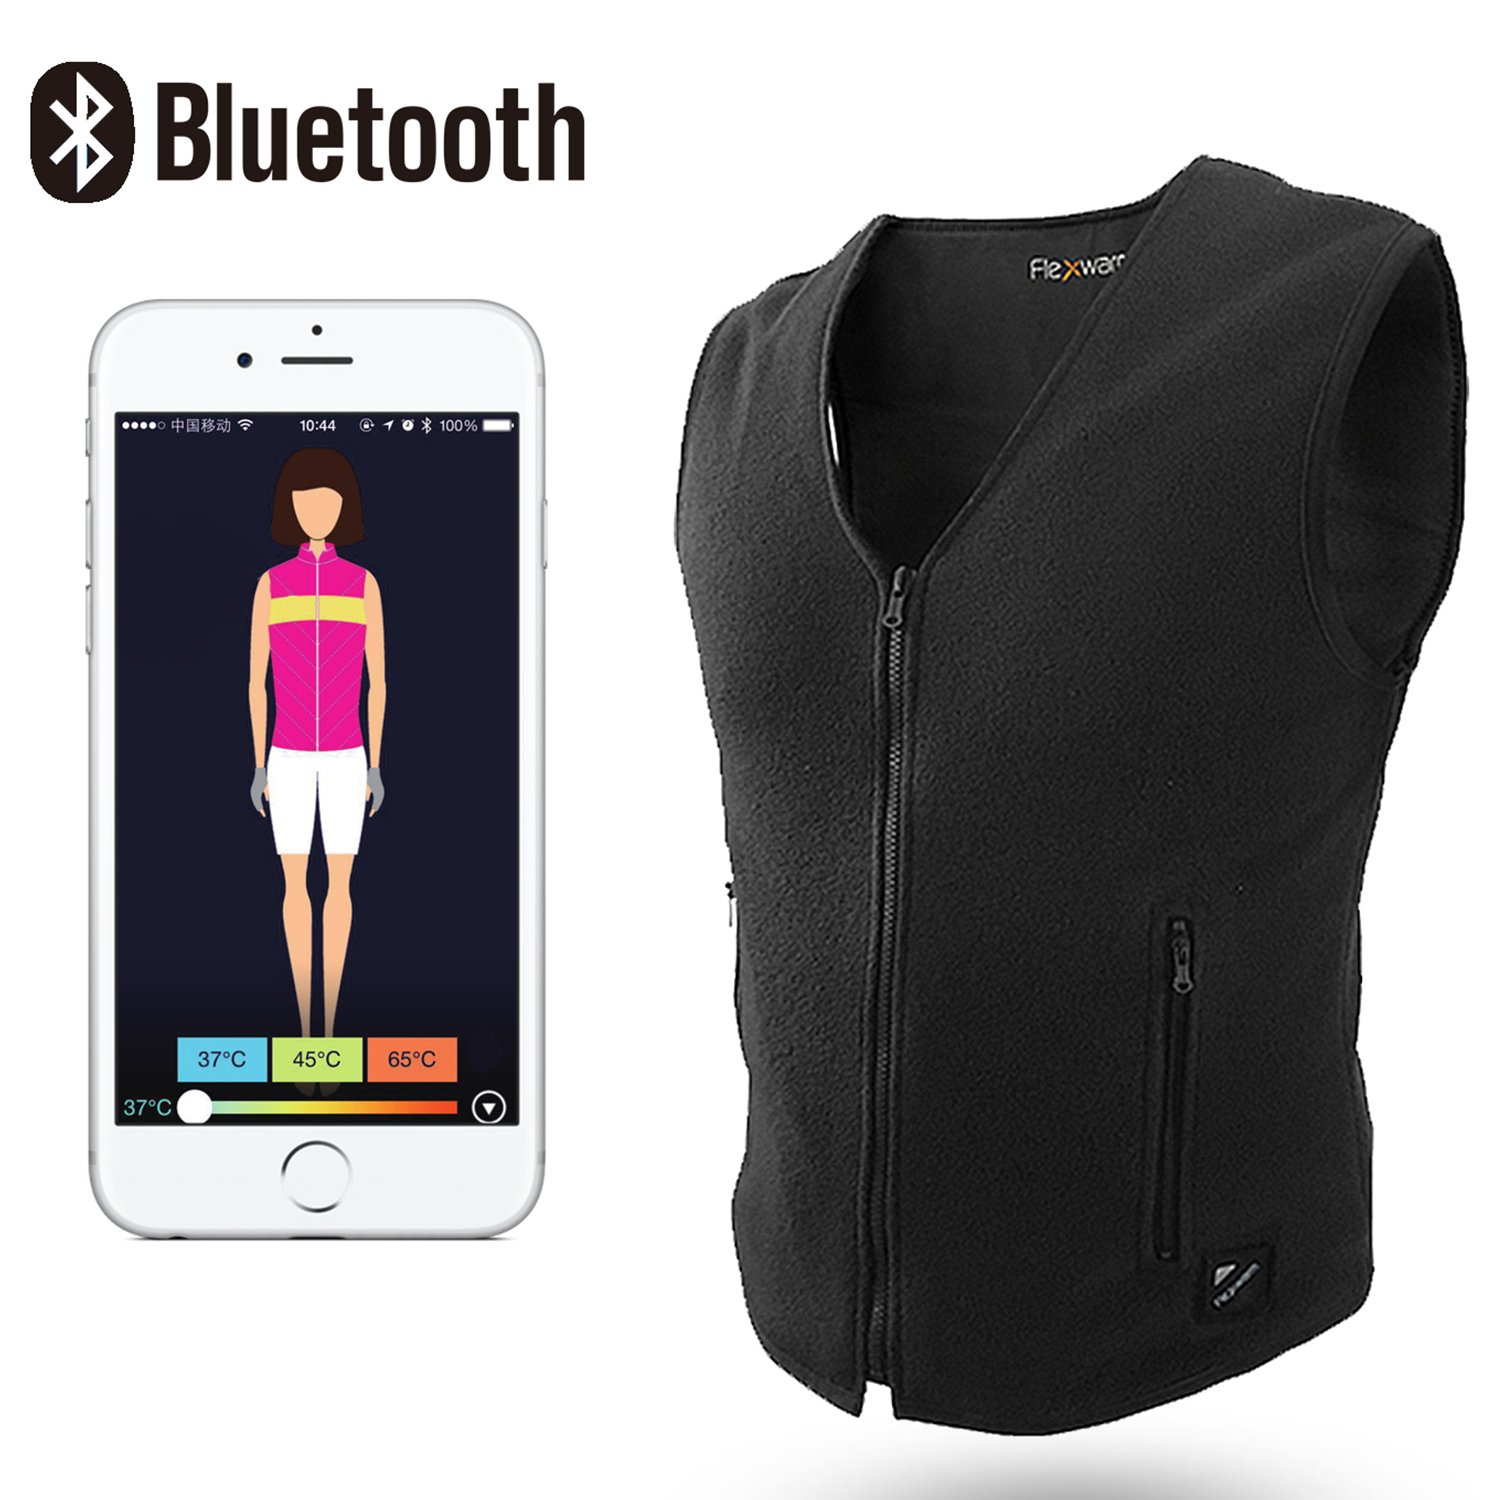 Beautprincess Women's Therapy Insulated Heated Down Vest Electric Heating Clothes Far Infrared with Smartphone Bluetooth App Control Small by Beautprincess